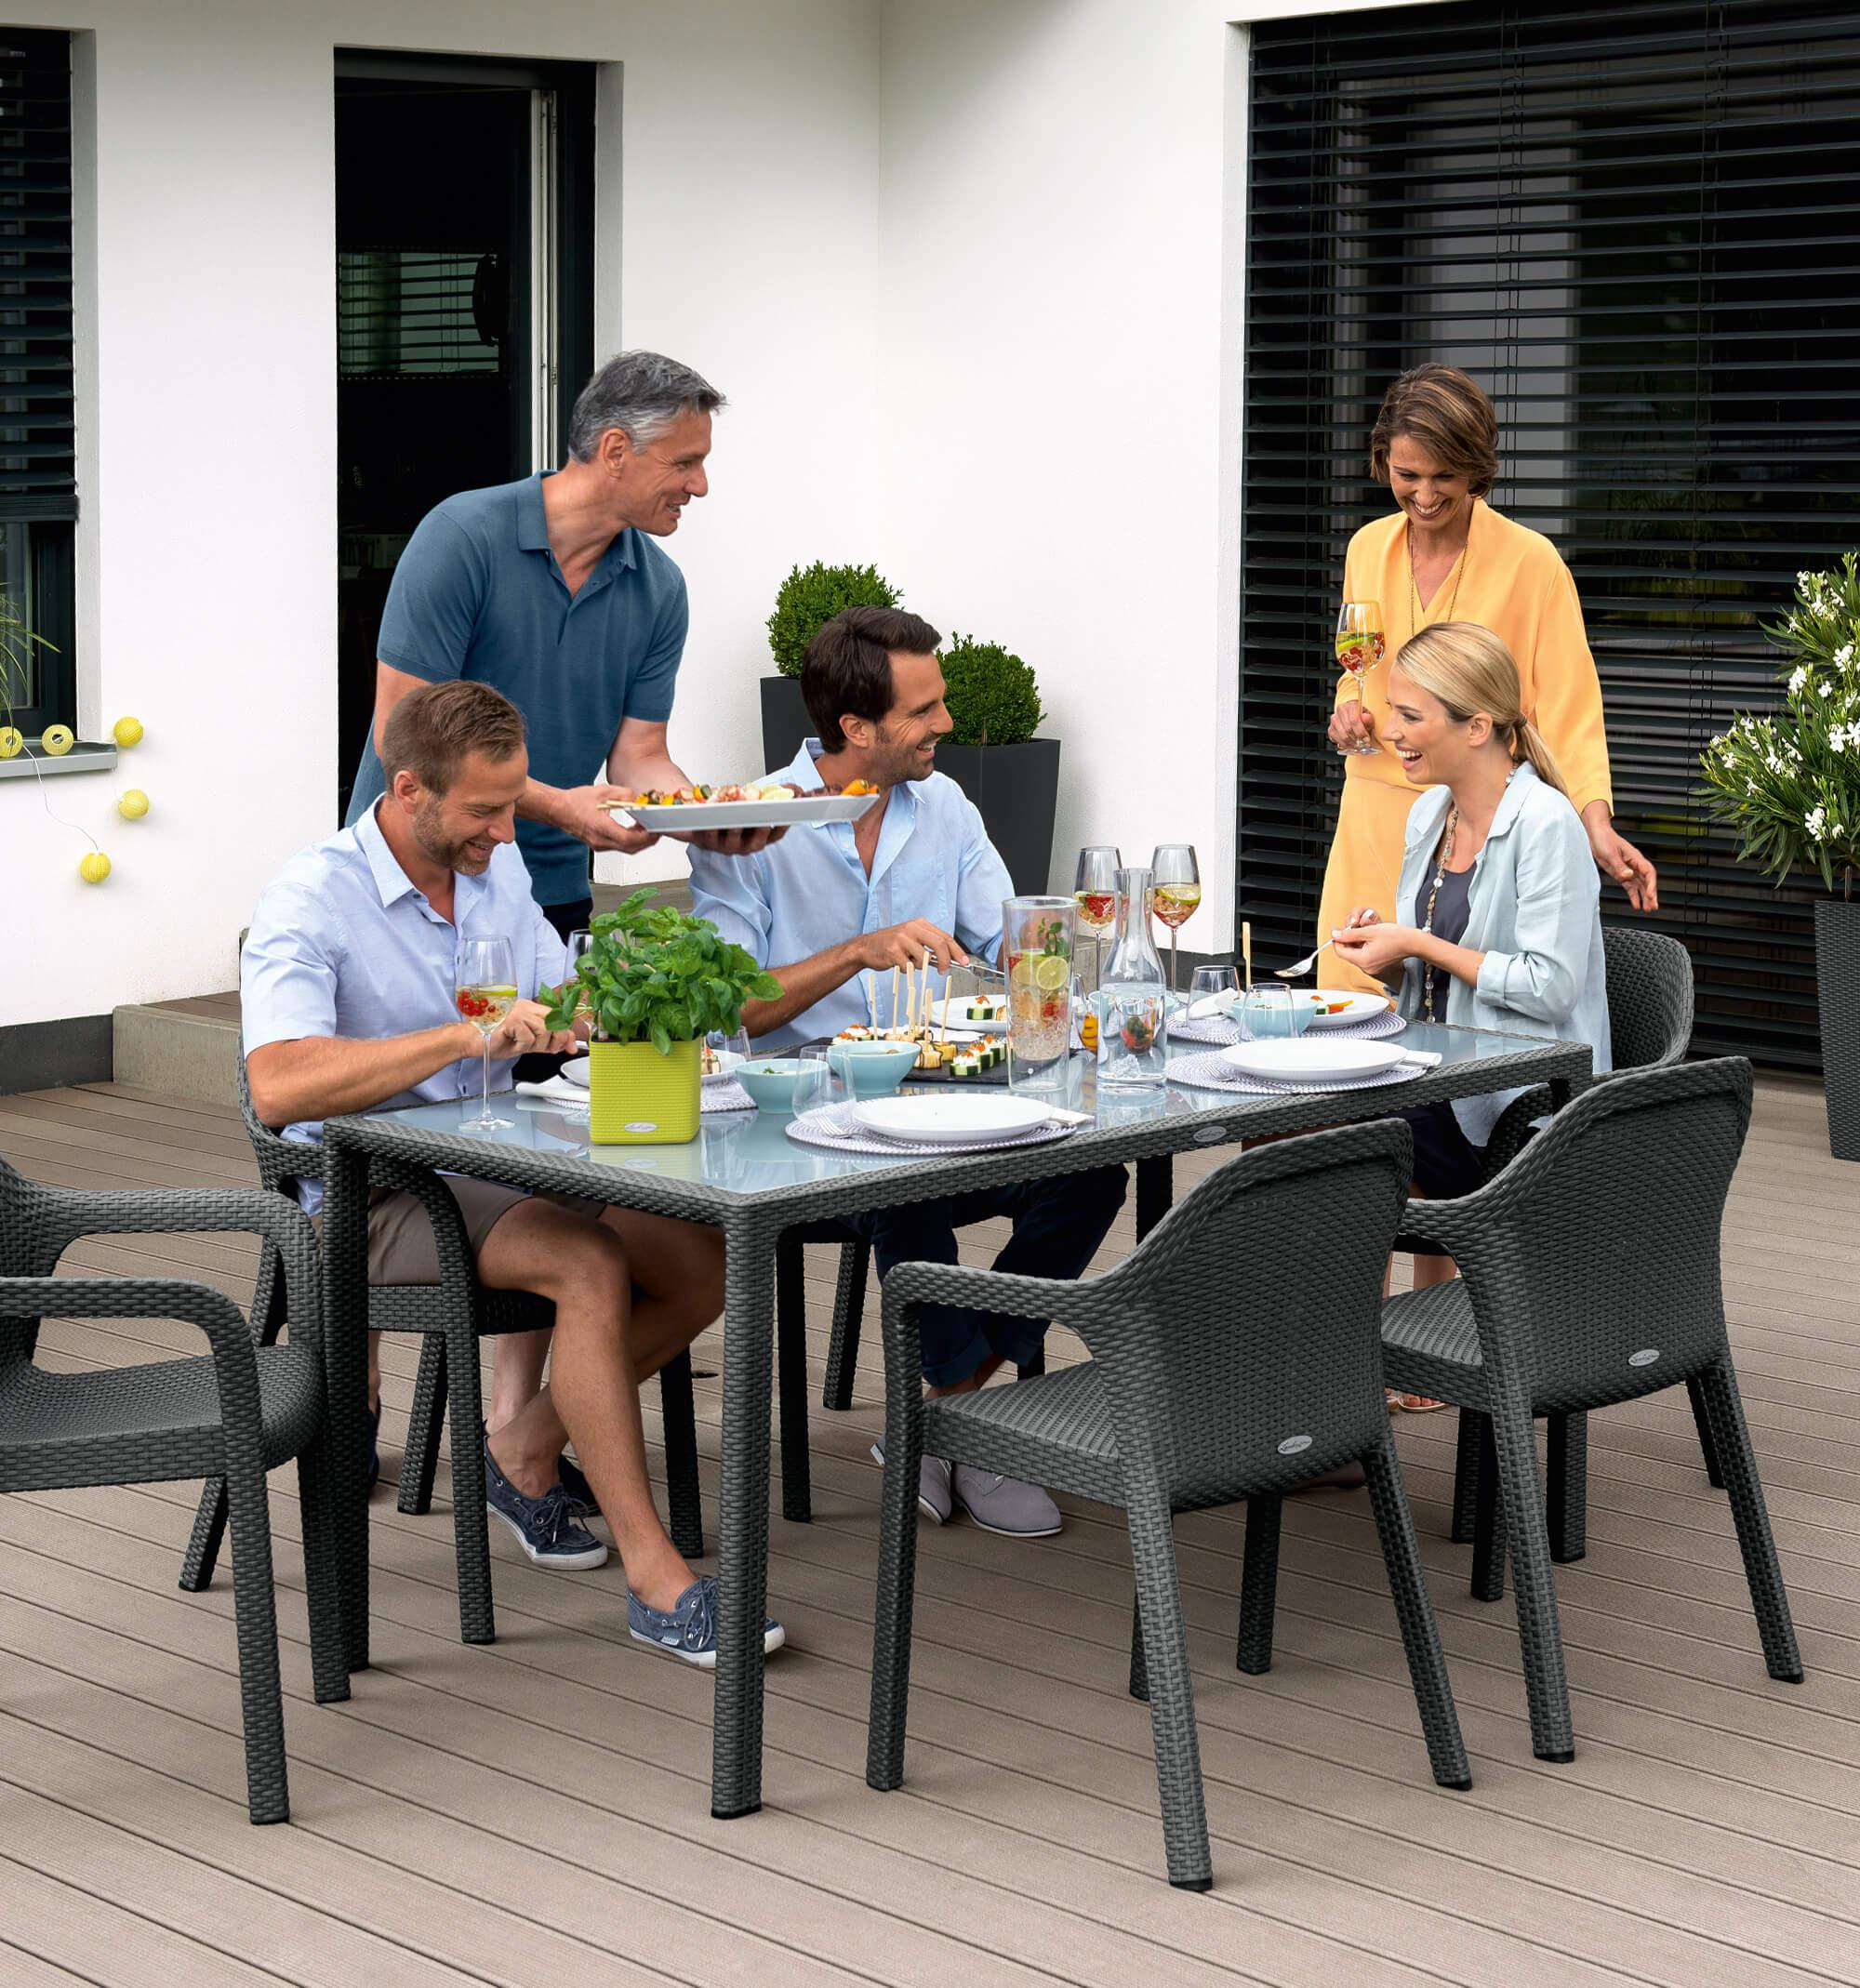 Enjoy  Sunday afternoon with the comfortable design furniture by LECHUZA